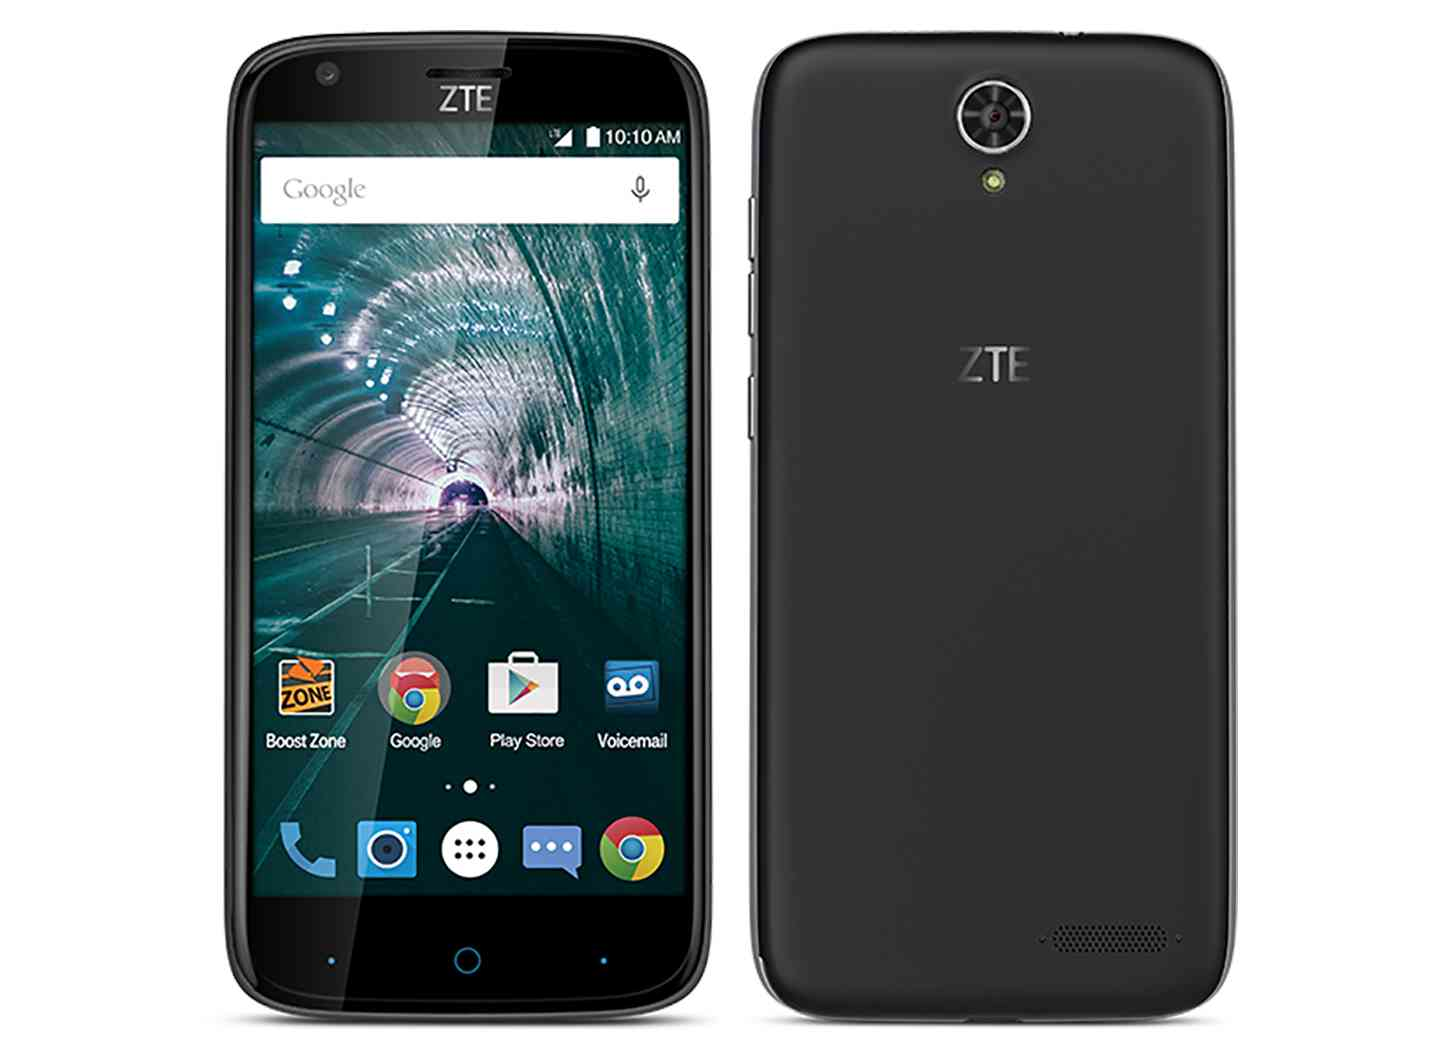 zte-warp-7-launches-at-boost-mobile-9to5net.com